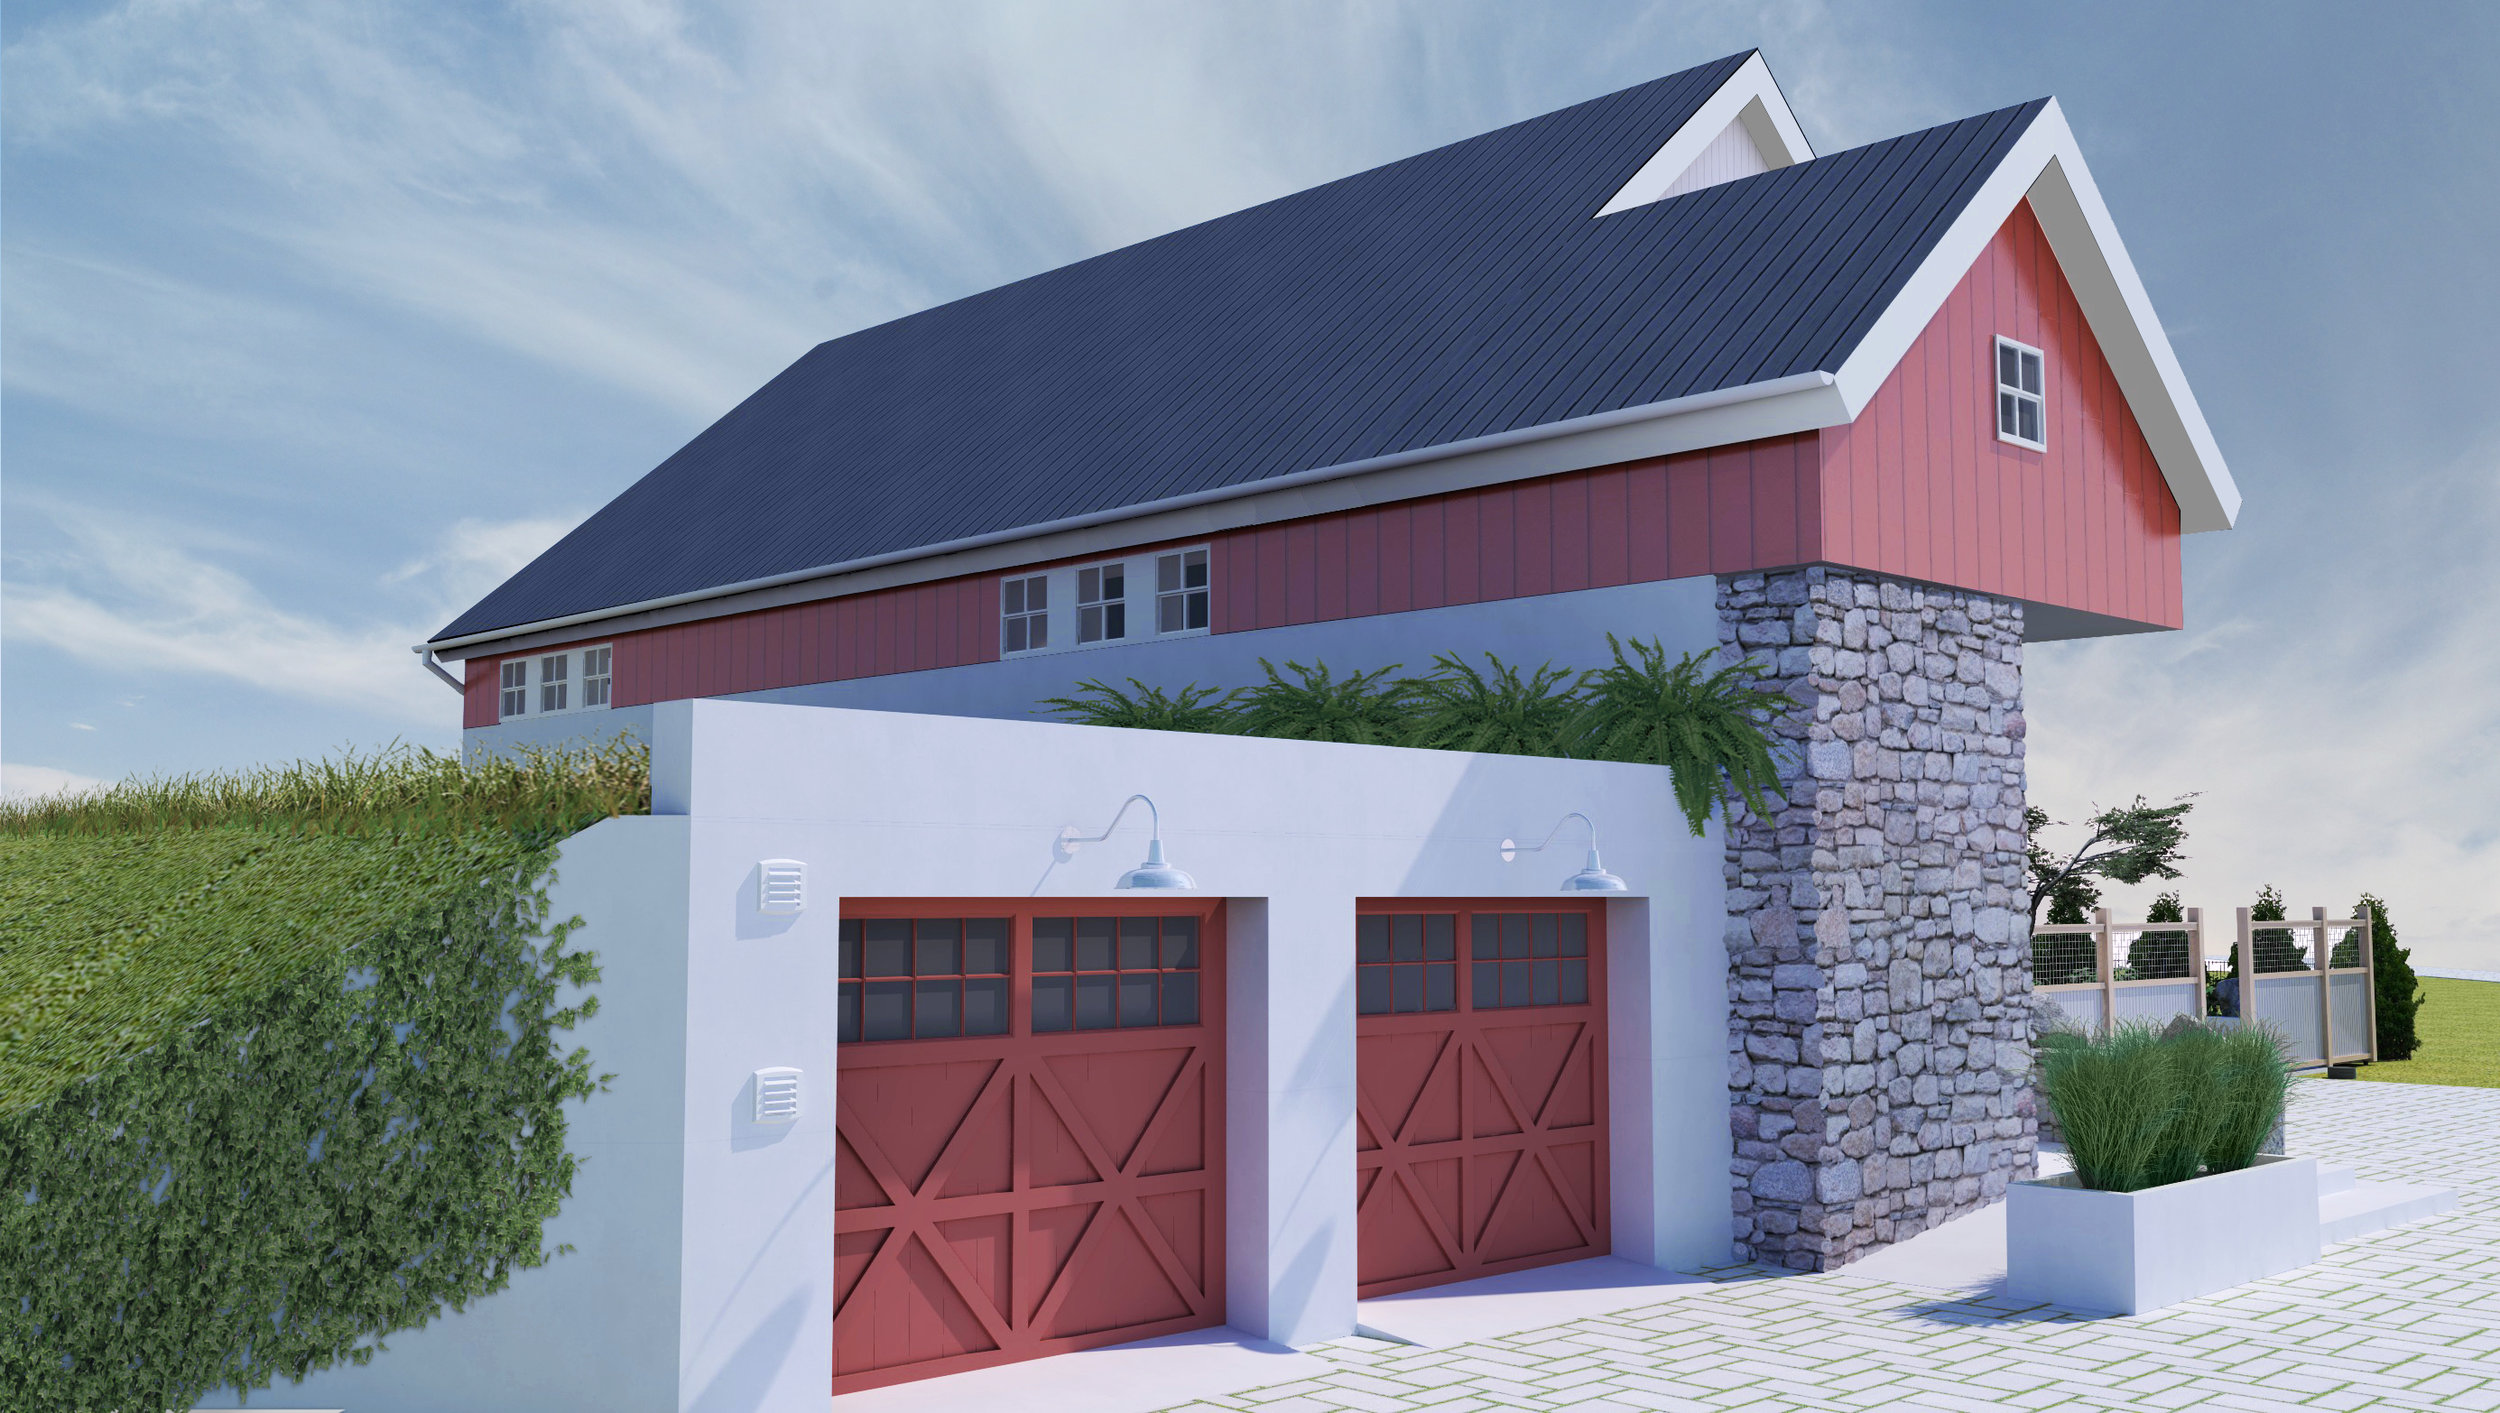 The  New American Barn  is designed to last for a very long time with minimal maintenance. The home's superior energy efficiency is enhanced by natural earth temperatures and passive solar gain in the winter, and strategic shading with ground cooling in the summer.